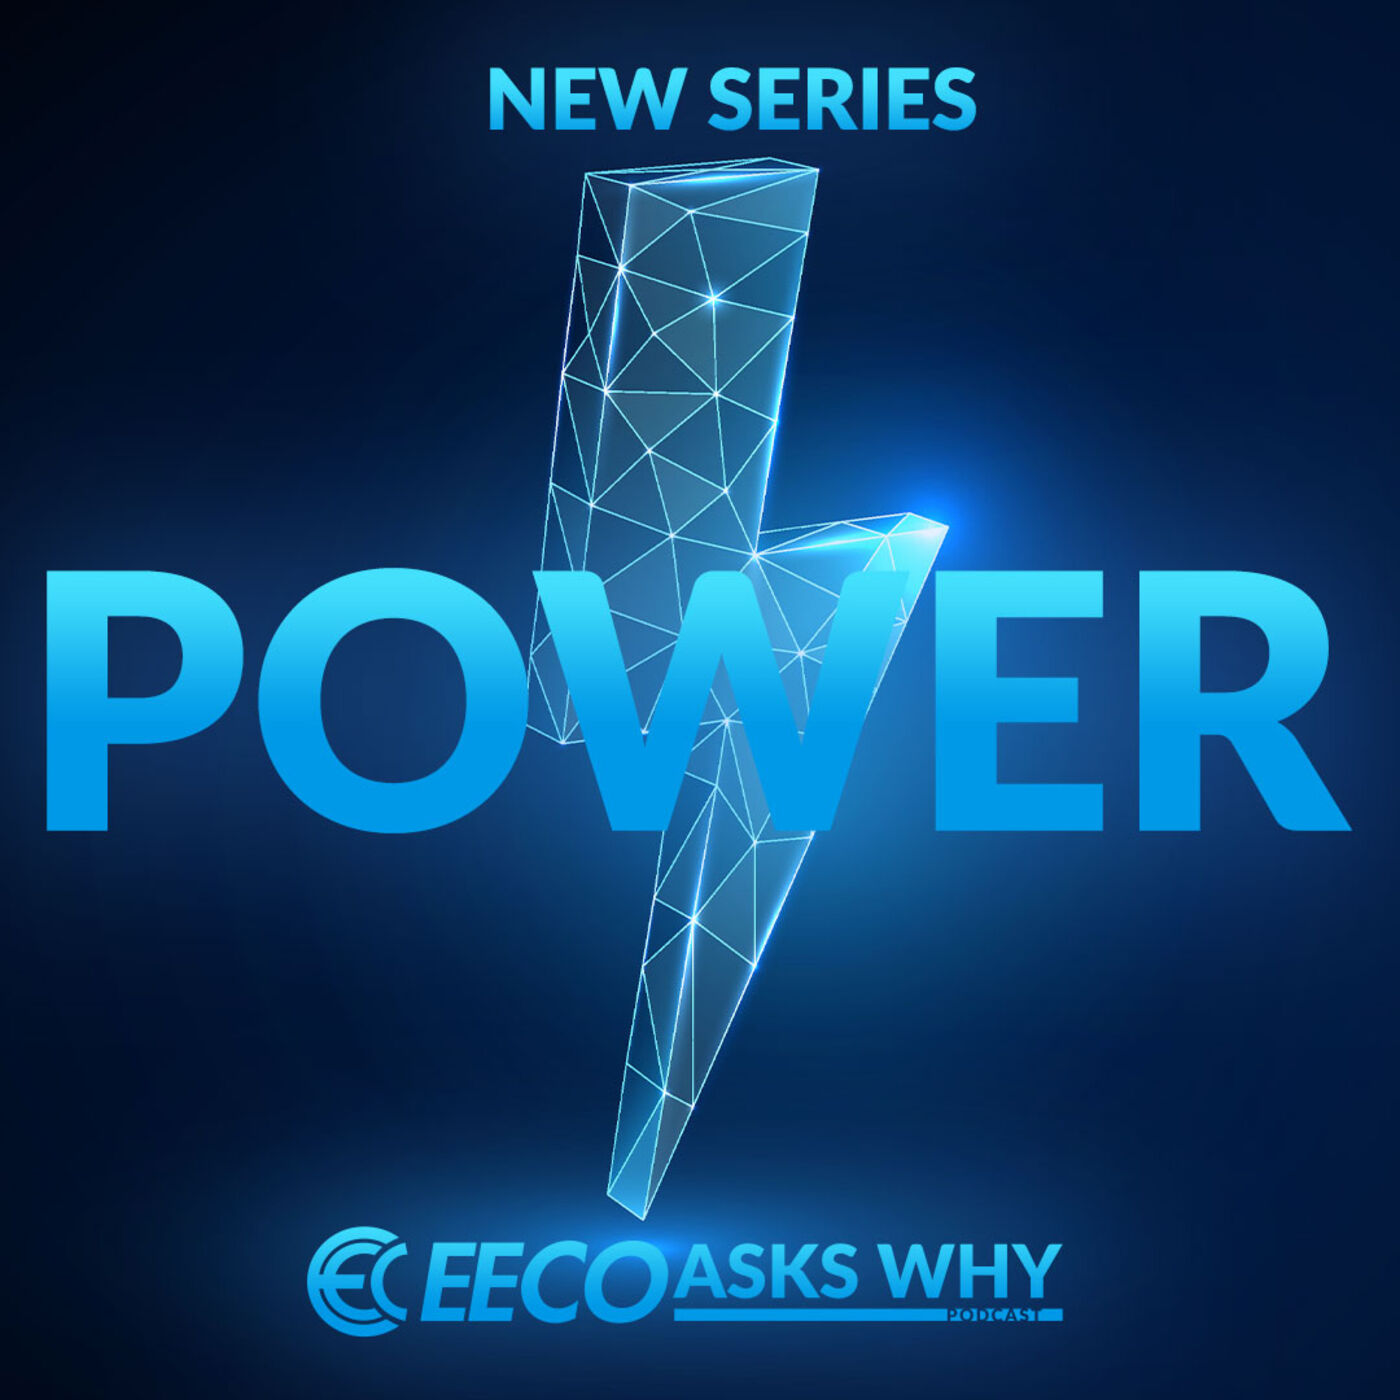 061. Power Series - How close can I get to my electrical gear?